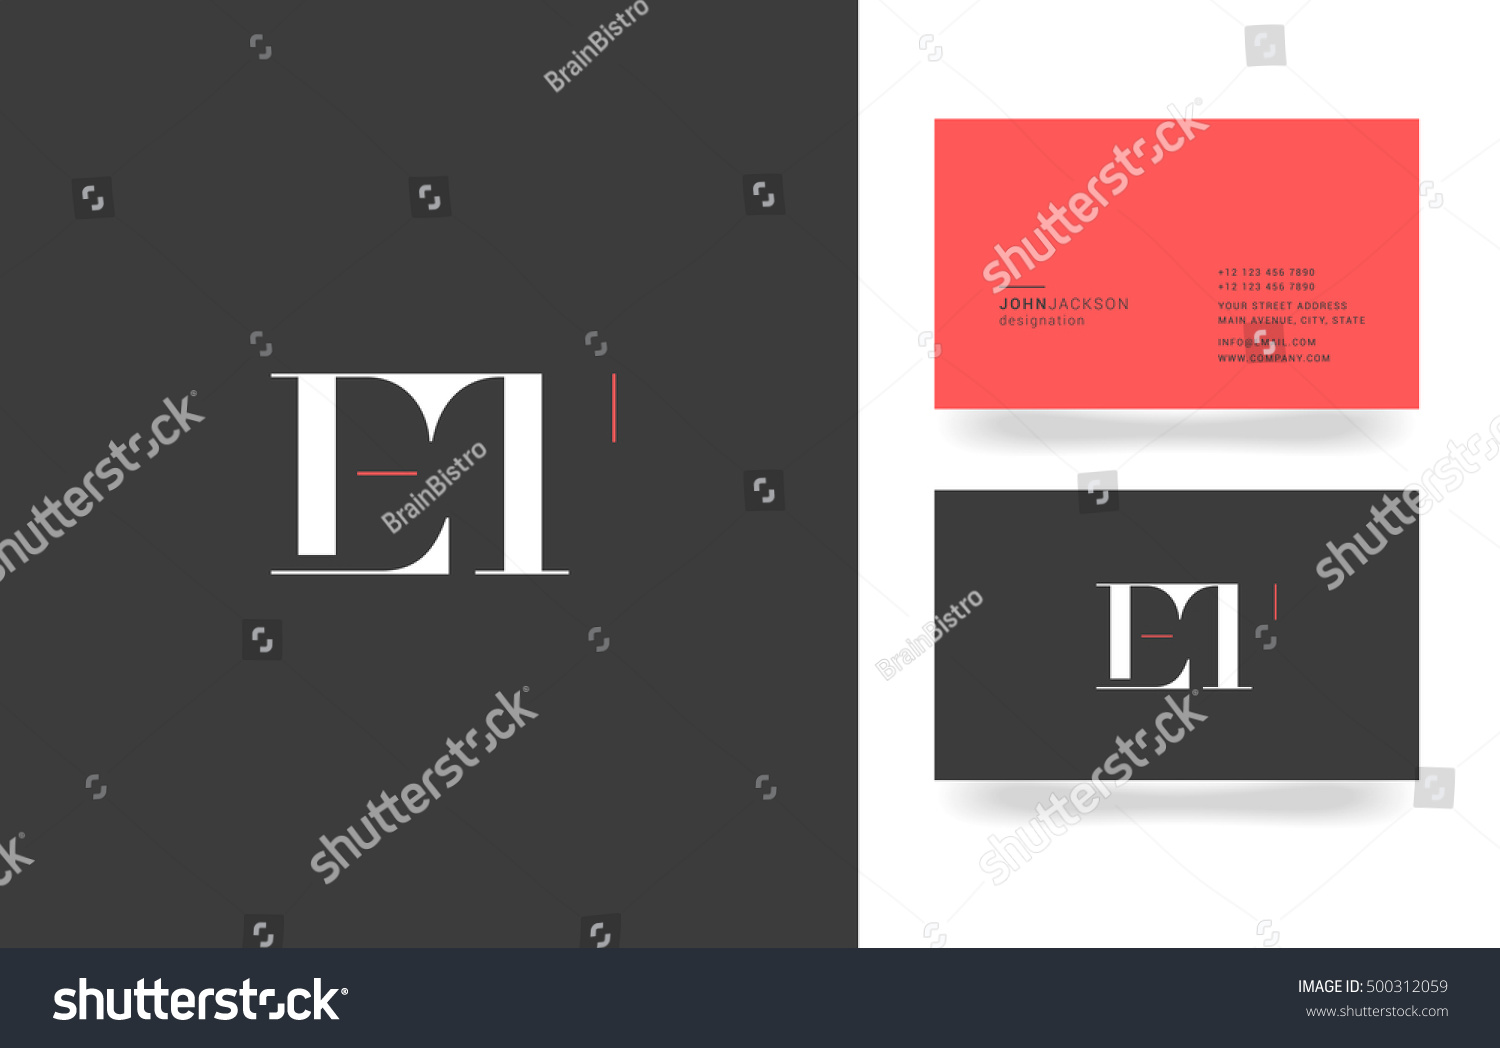 Generous 1 Inch Hexagon Template Huge 1 Page Resumes Examples Regular 1.25 Button Template 10 Best Resumes Old 10 Tips To Making A Resume Soft100 Dollar Bill Template E T Letters Logo Business Card Stock Vector 500312059   Shutterstock